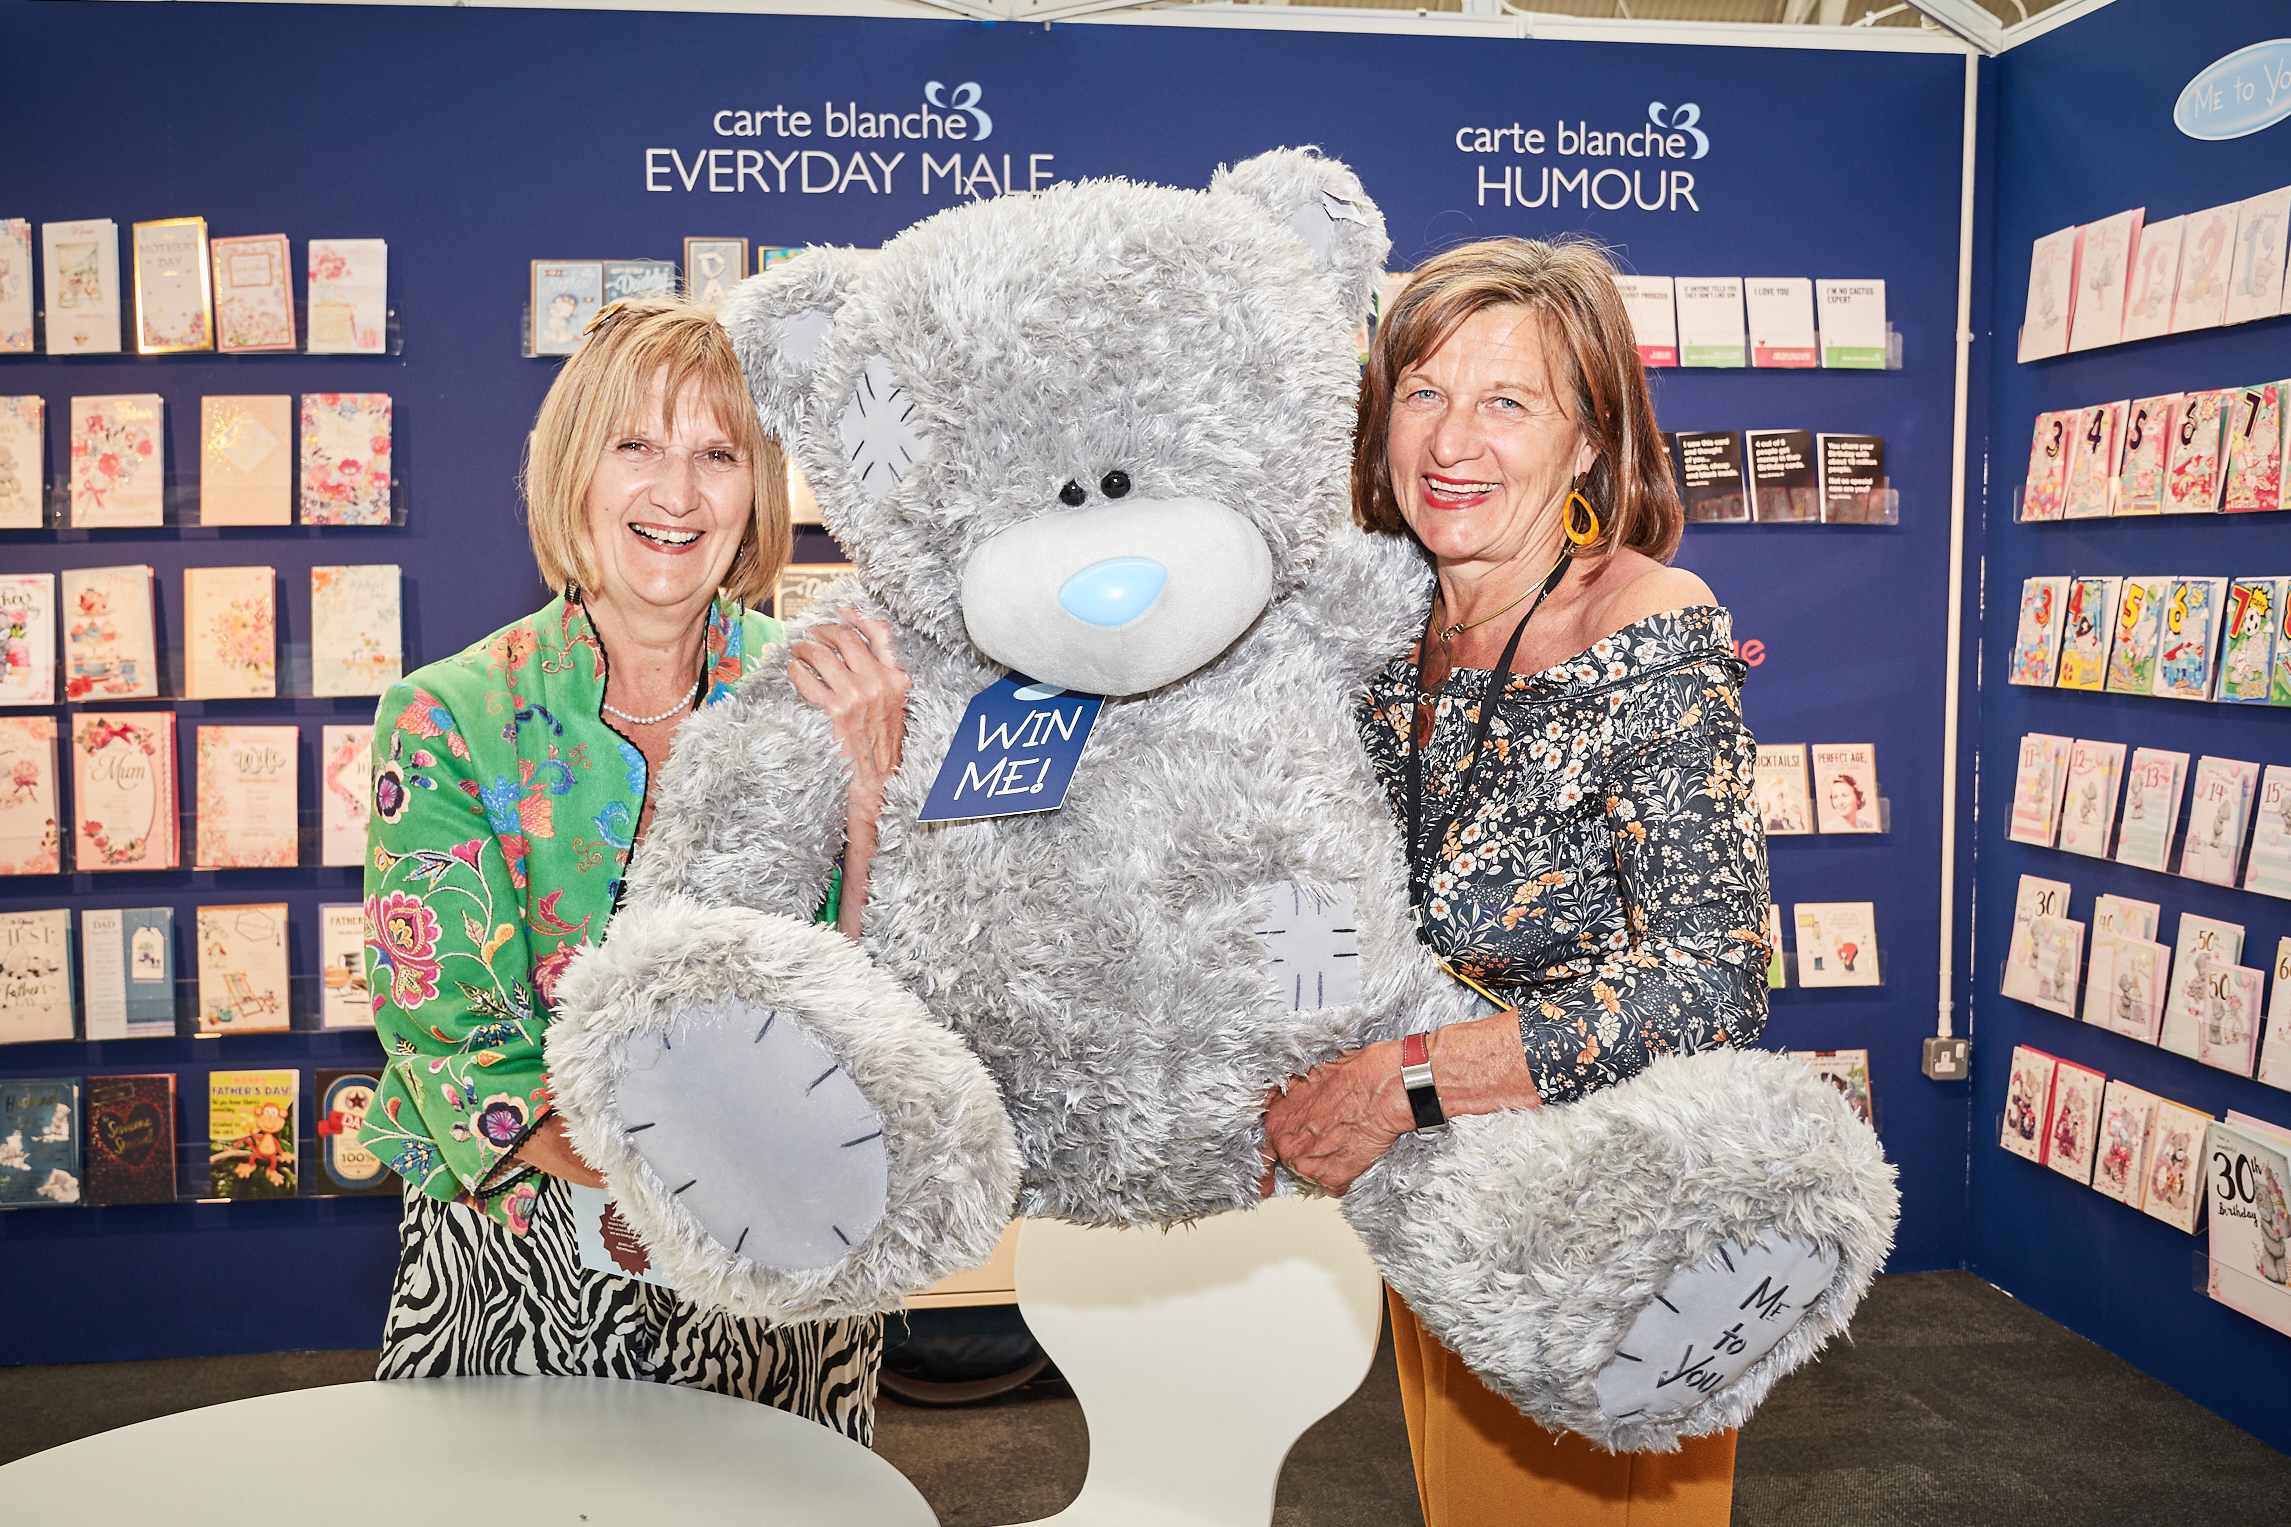 Above: South West indie, (left) Maggie Wynn, owner of Just Cards in Honiton and mangeress Angie Prior were 'beary' happy to have won a huge Me to You bear in Carte Blanche's first day prize drawer at PG Live. Eileen Le Net from Albion Books, Hove won the giant Tatty Teddy in the second day draw.